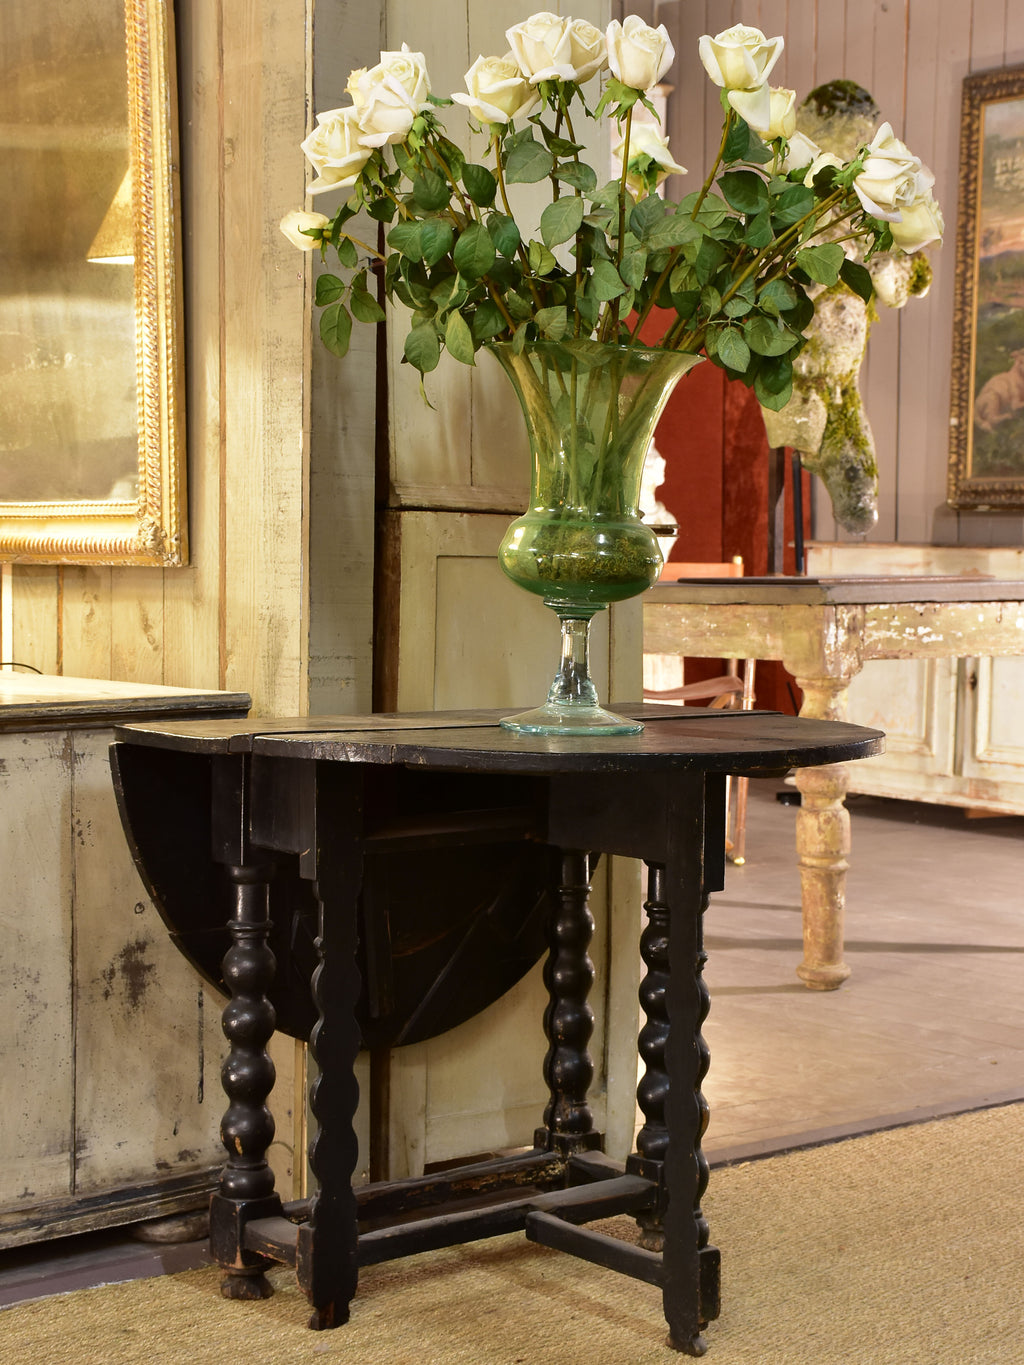 Black drop leaf table Louis XIV